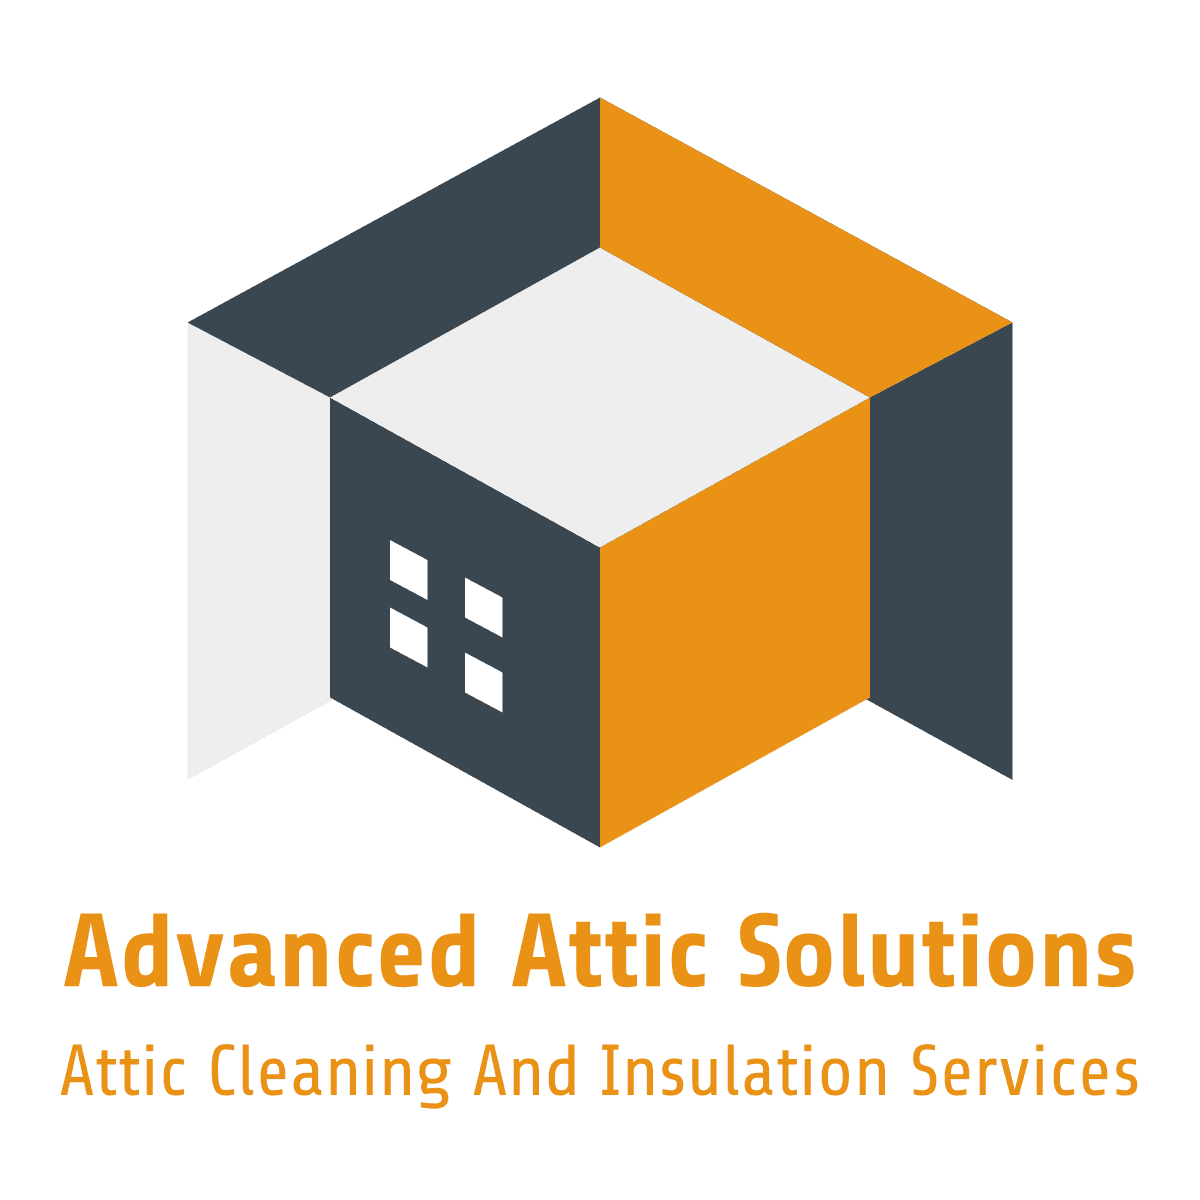 Attic Cleaning Advanced Attic Solution Home Insulation